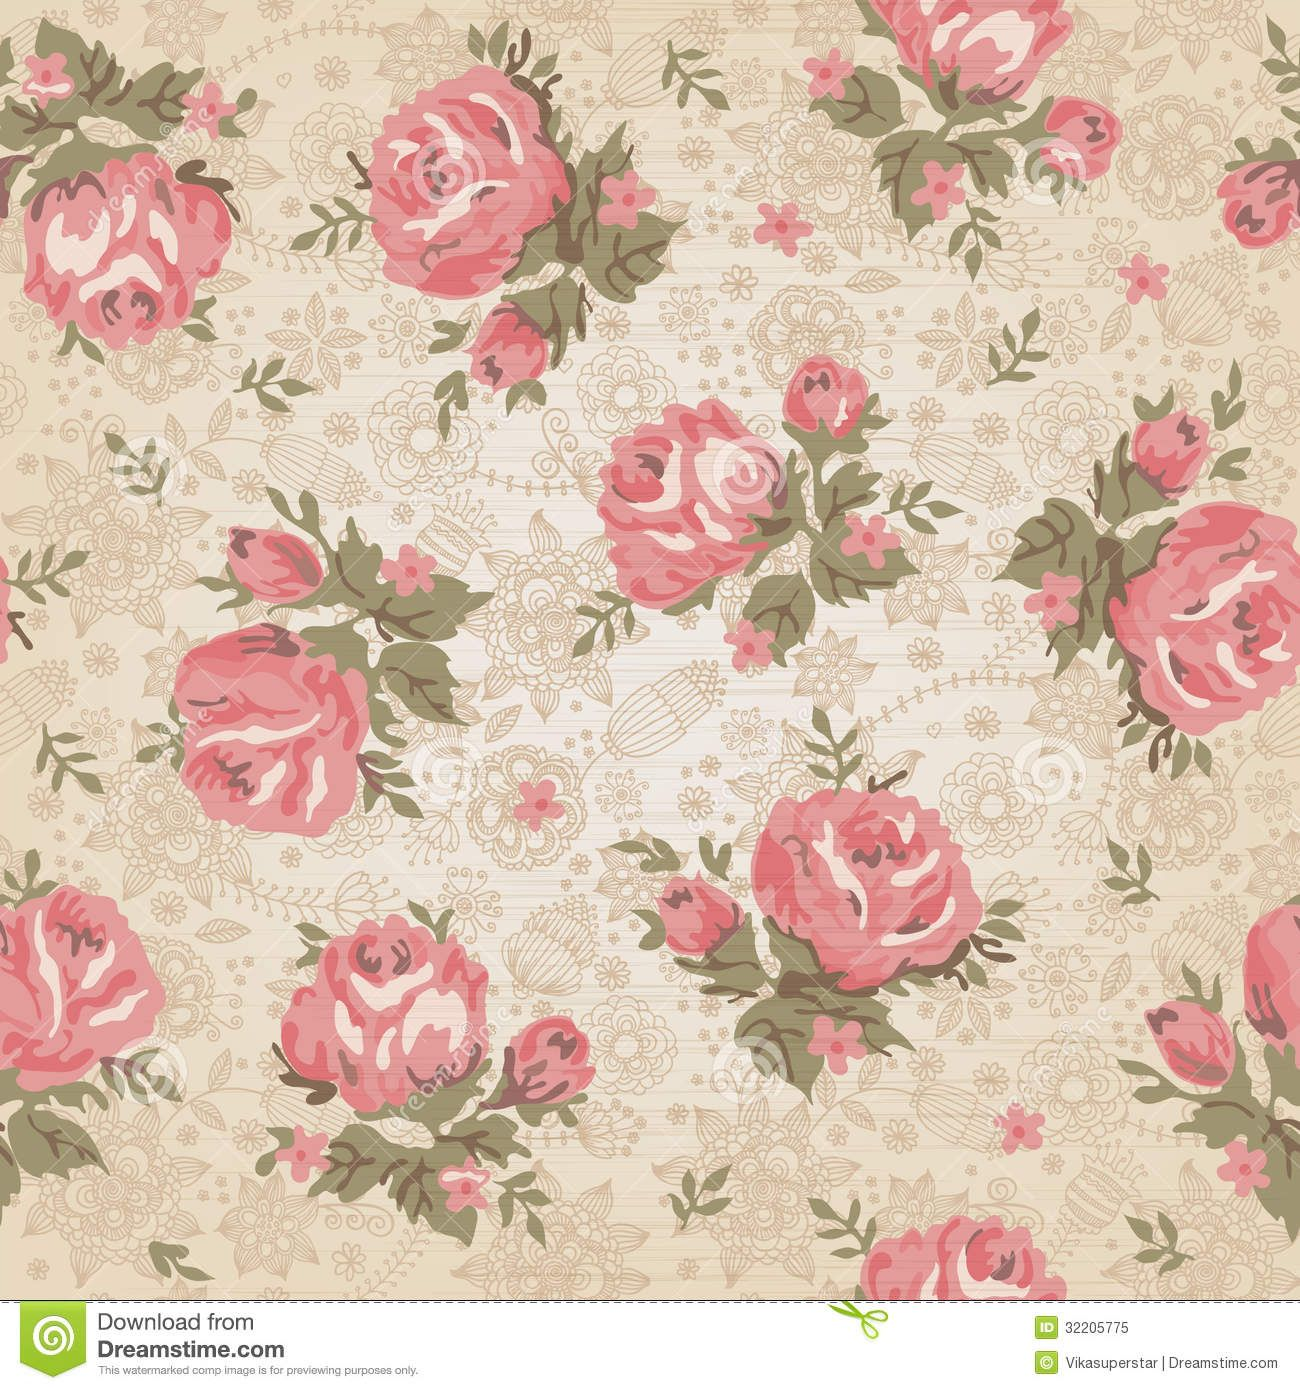 Vintage Seamless Floral Pattern - Download From Over 26 Million ...